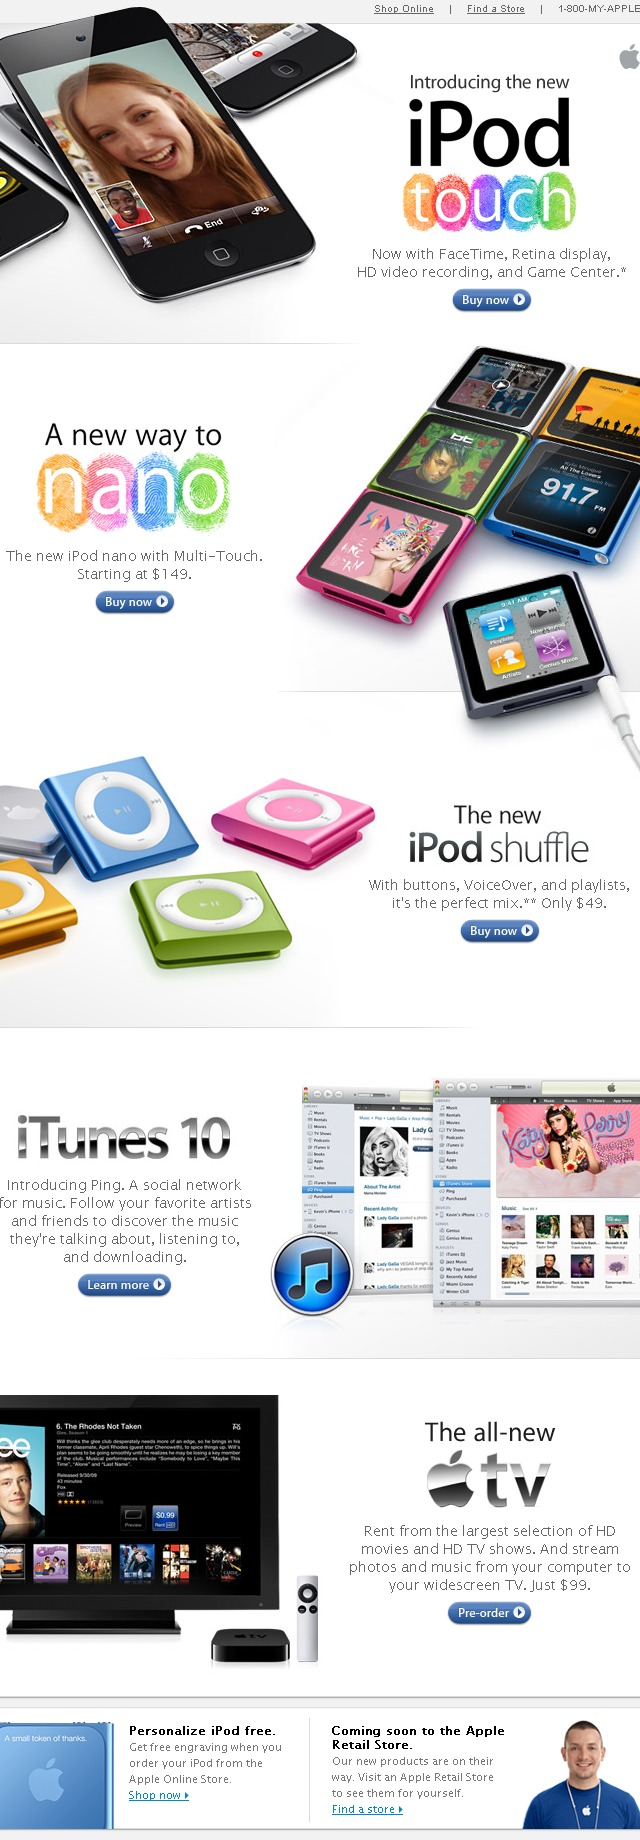 Thumb The Apple email to promote the new iPods, iTunes 10 and Apple TV